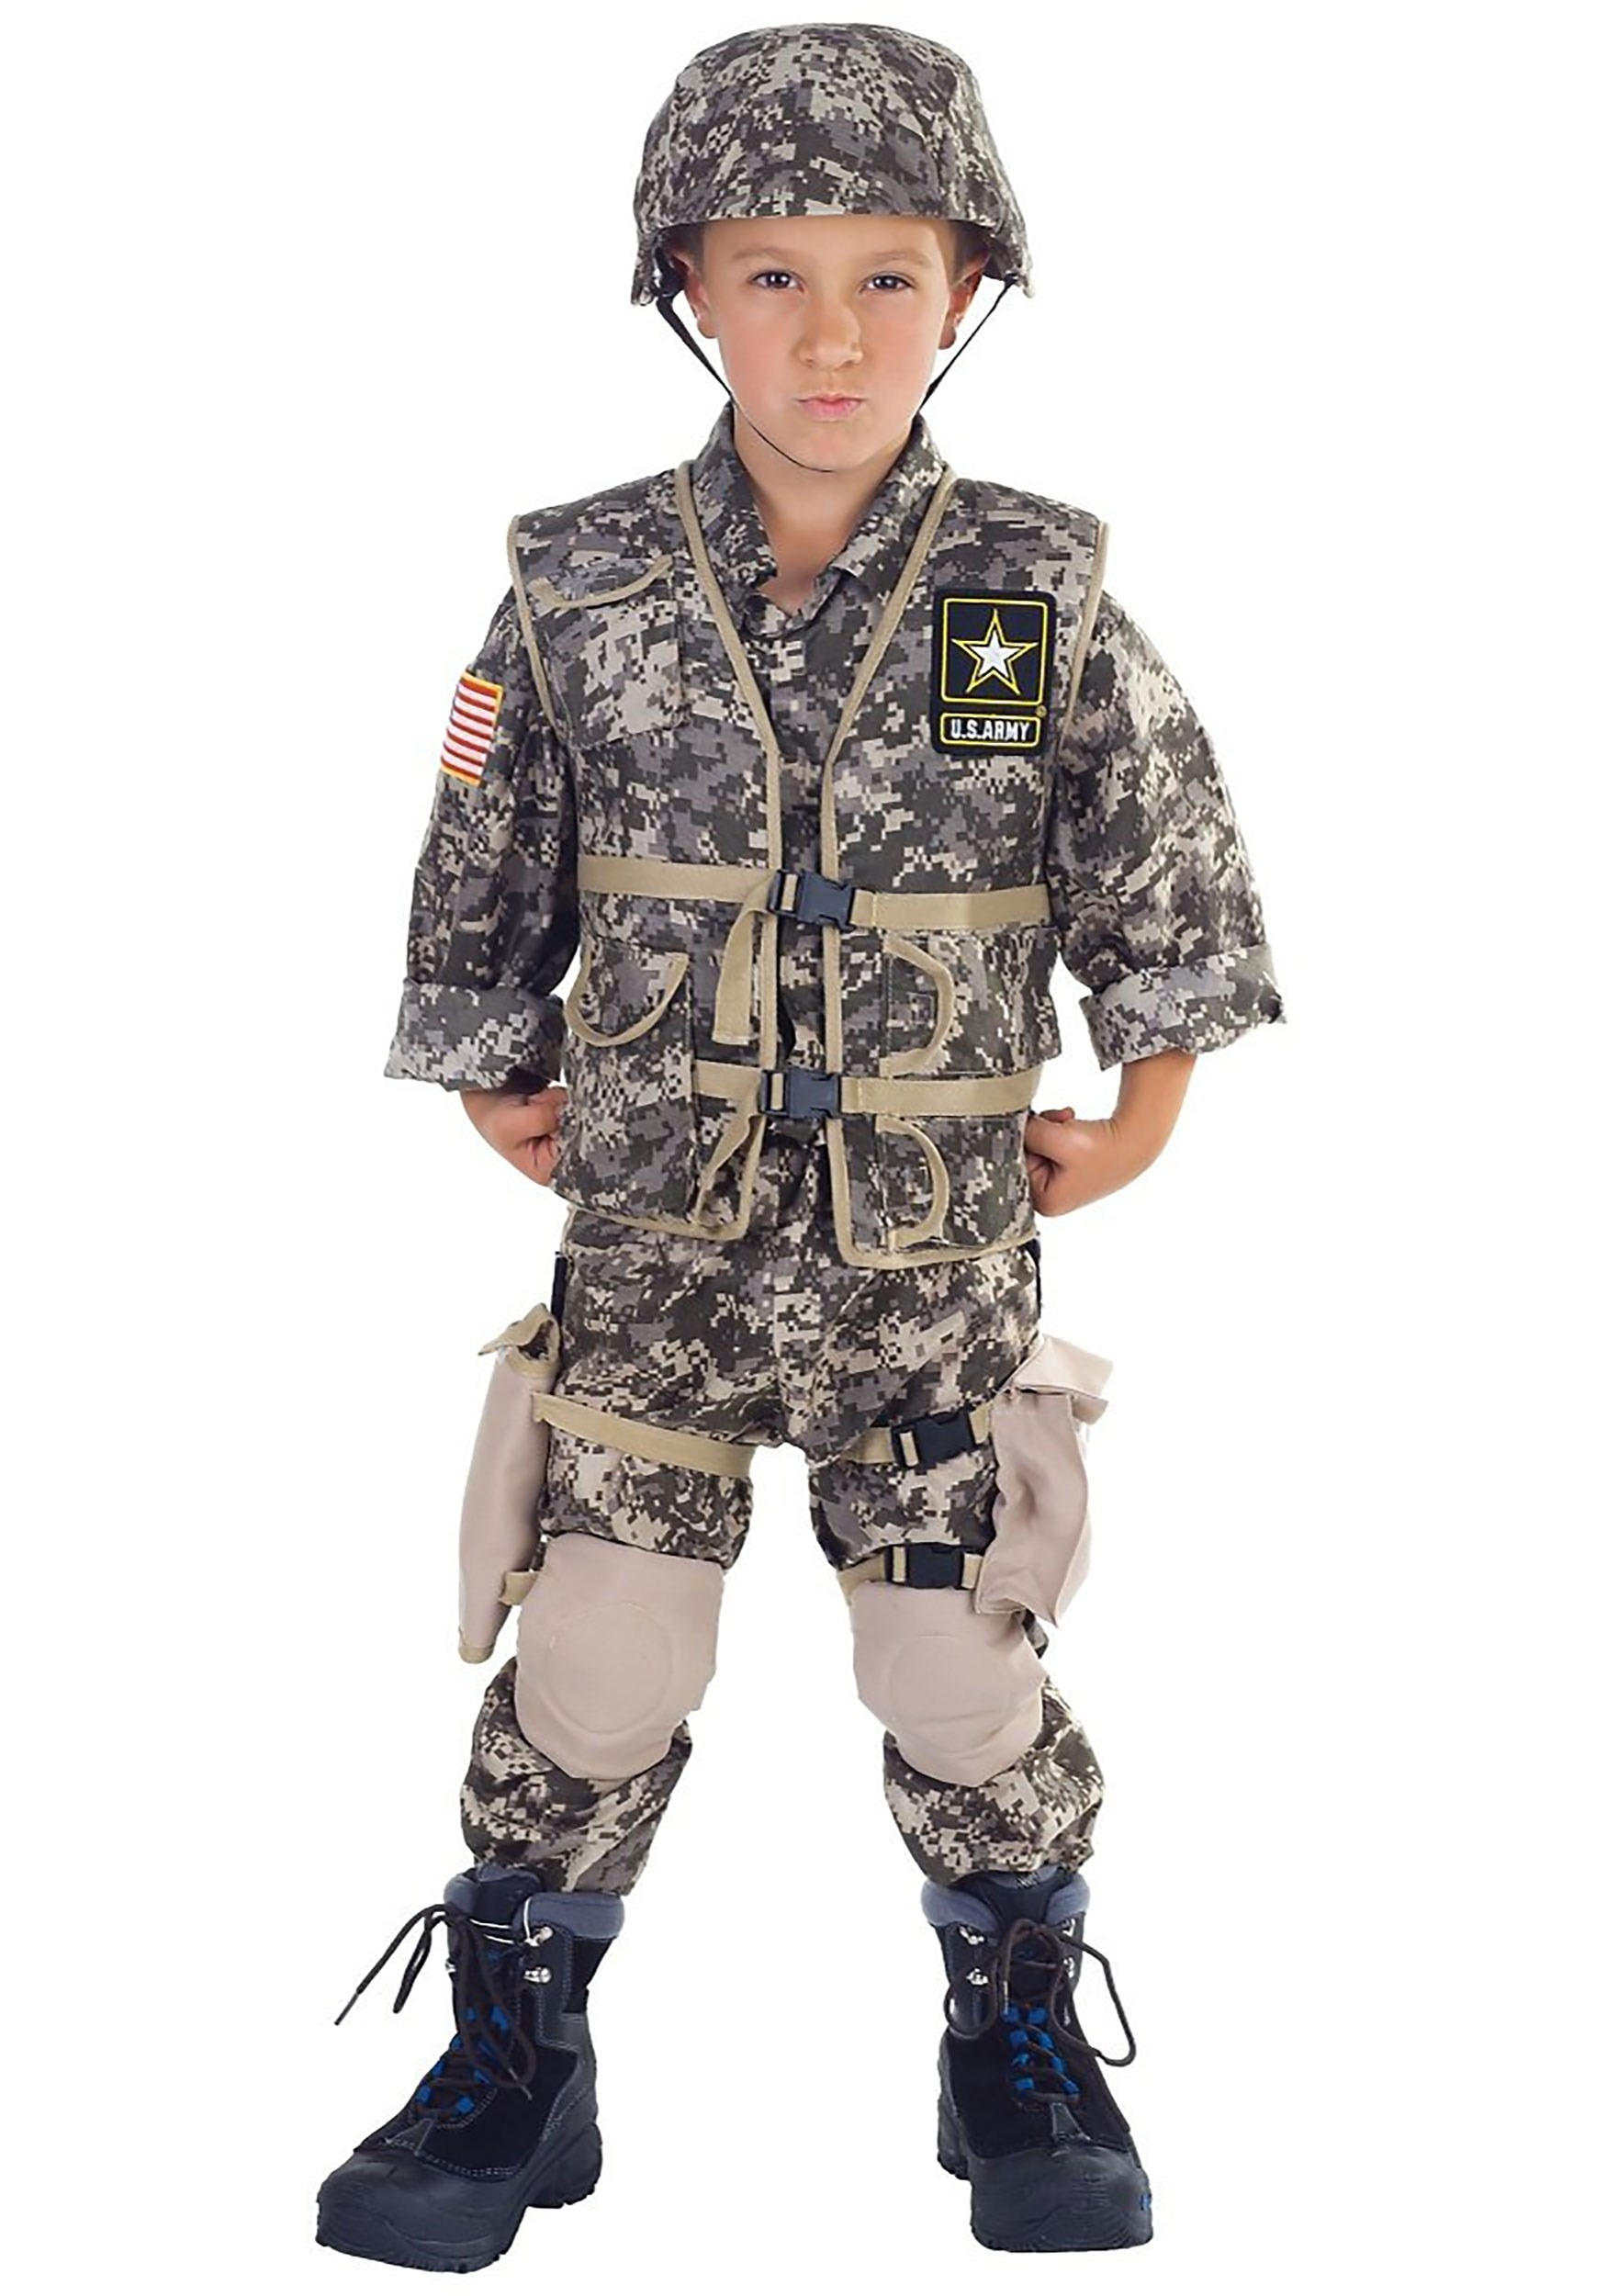 Kids Halloween Costumes Boys Army Ranger Costume$38.99